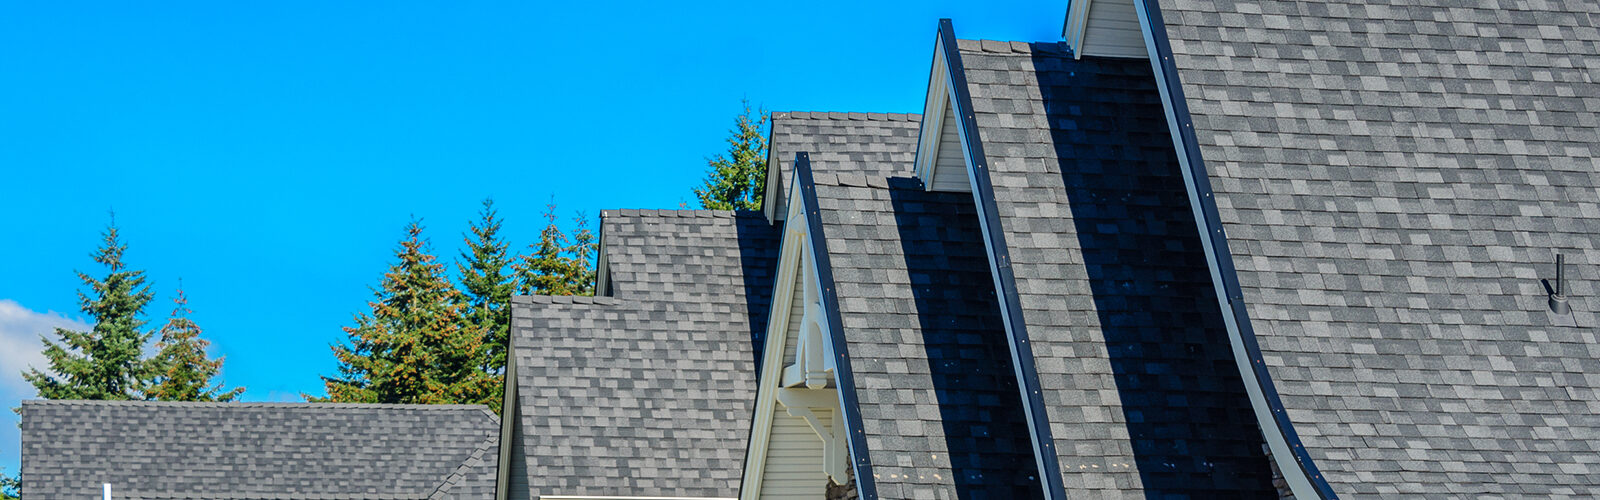 residential-roofing-projects